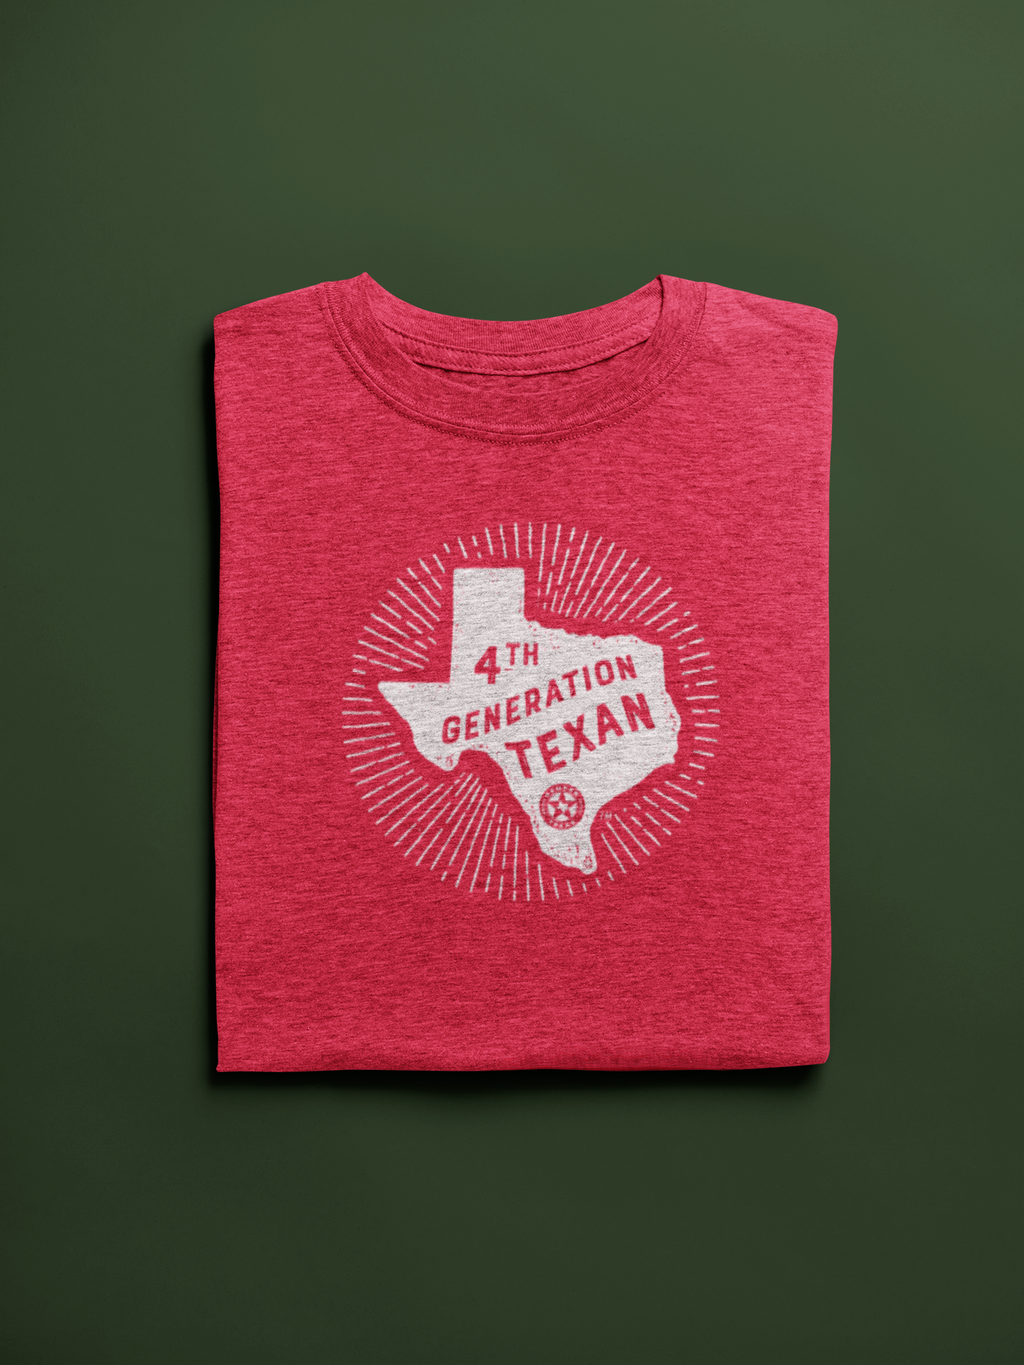 4th Generation Texan Shirt